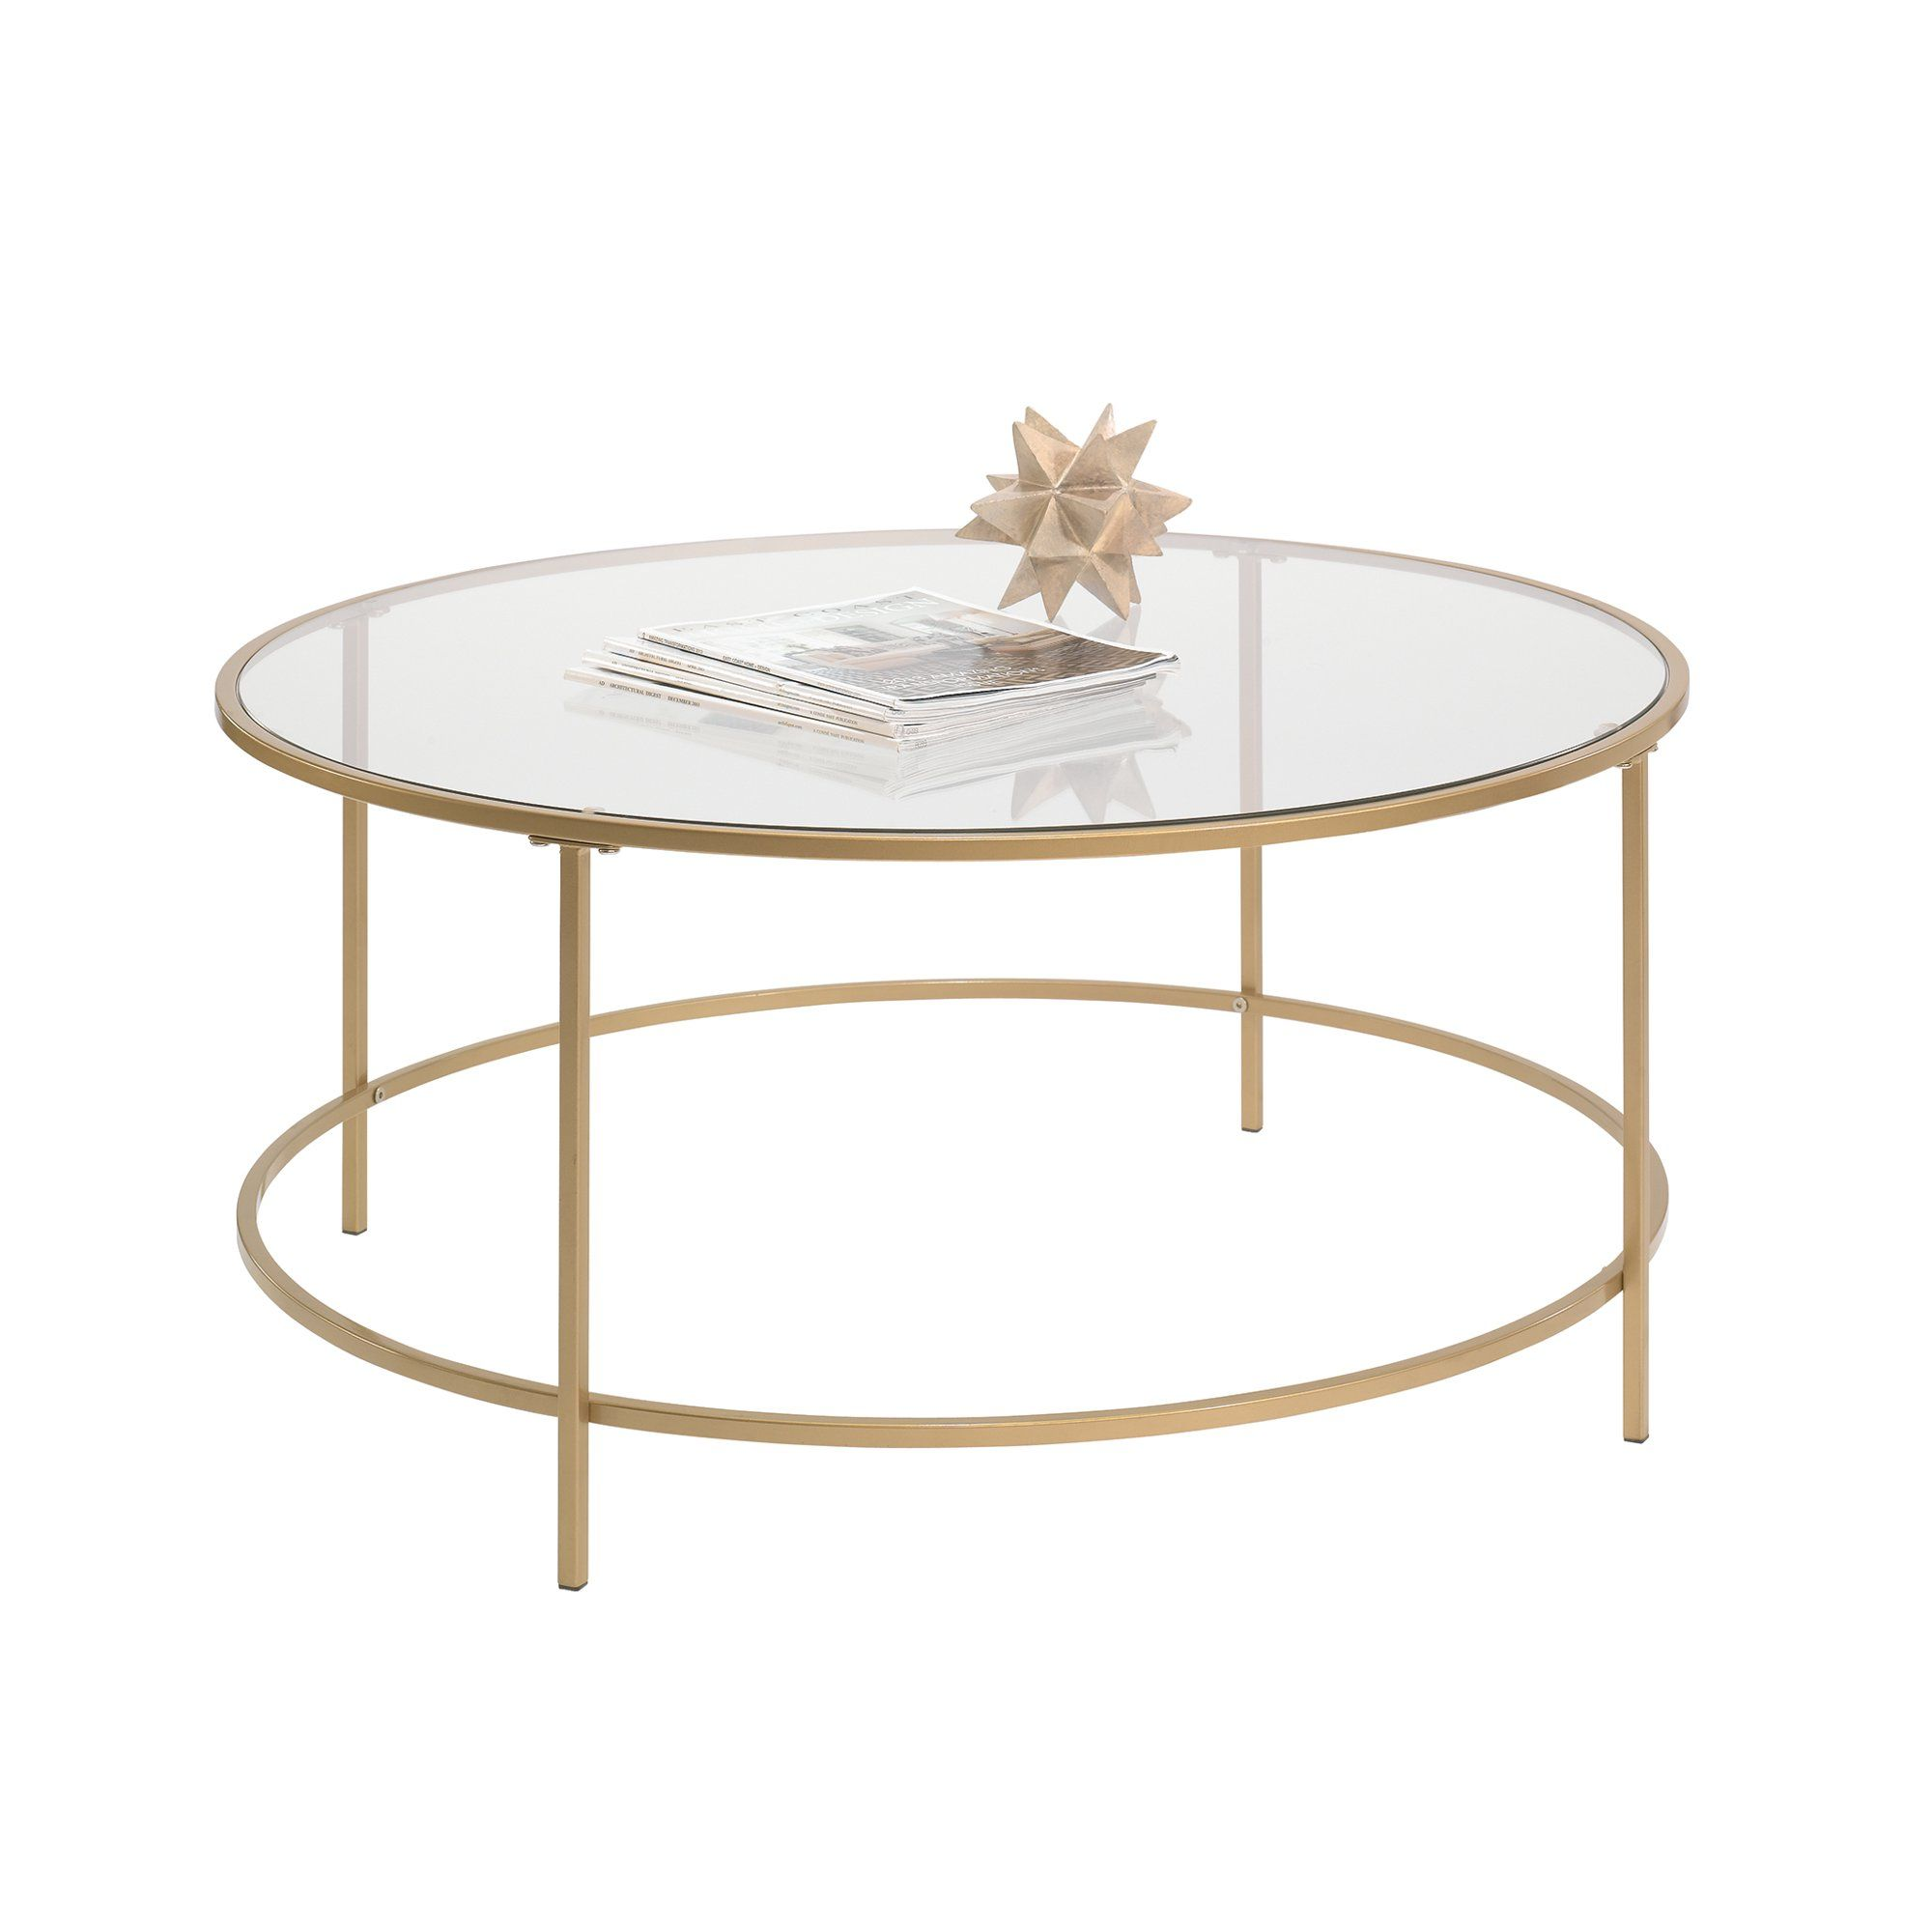 Better Homes Gardens Nola Coffee Table Gold Finish Walmart Com In 2021 Gold Coffee Table Coffee Table Circle Coffee Tables [ 2000 x 2000 Pixel ]